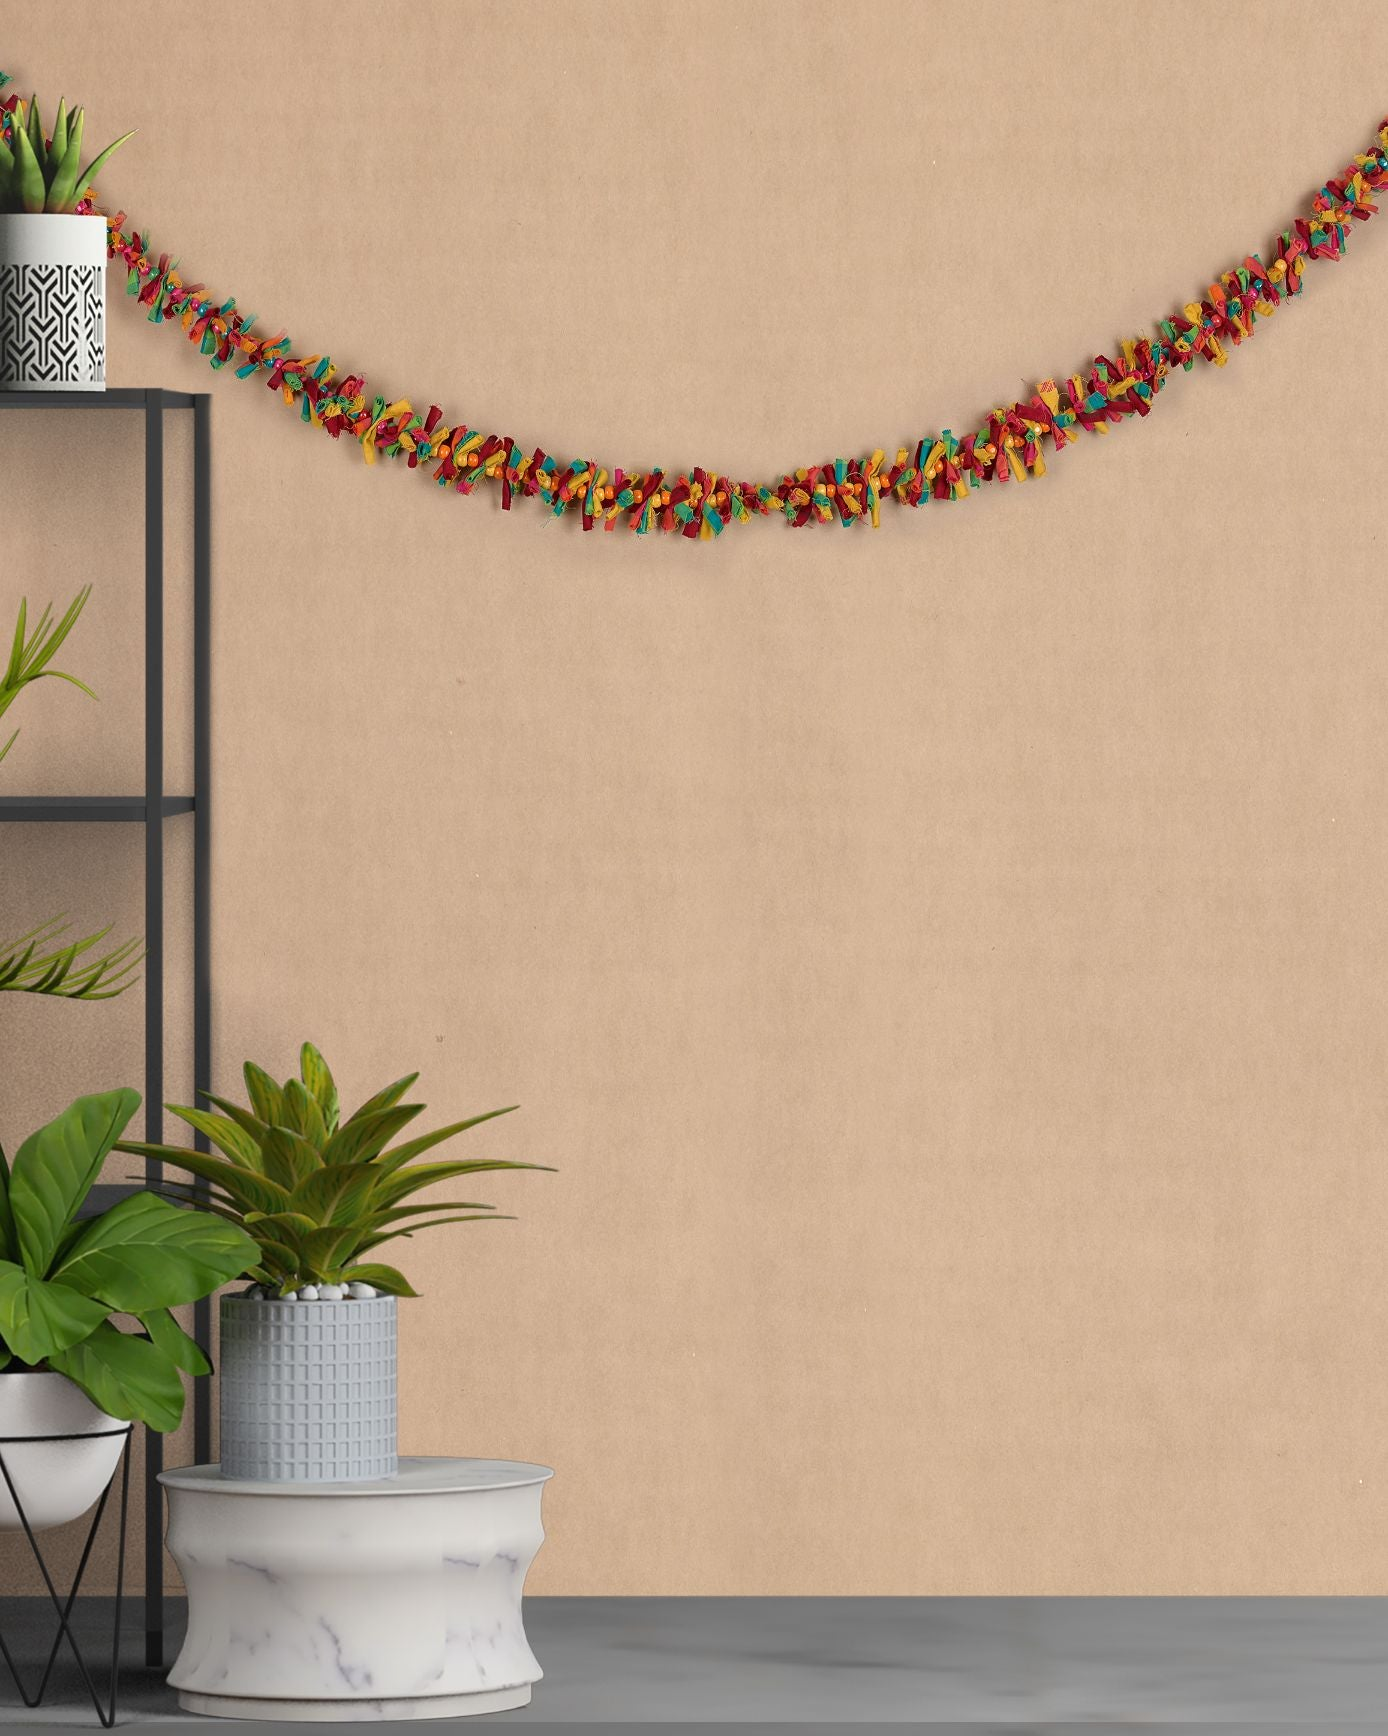 Rolly-Molly Decorative String